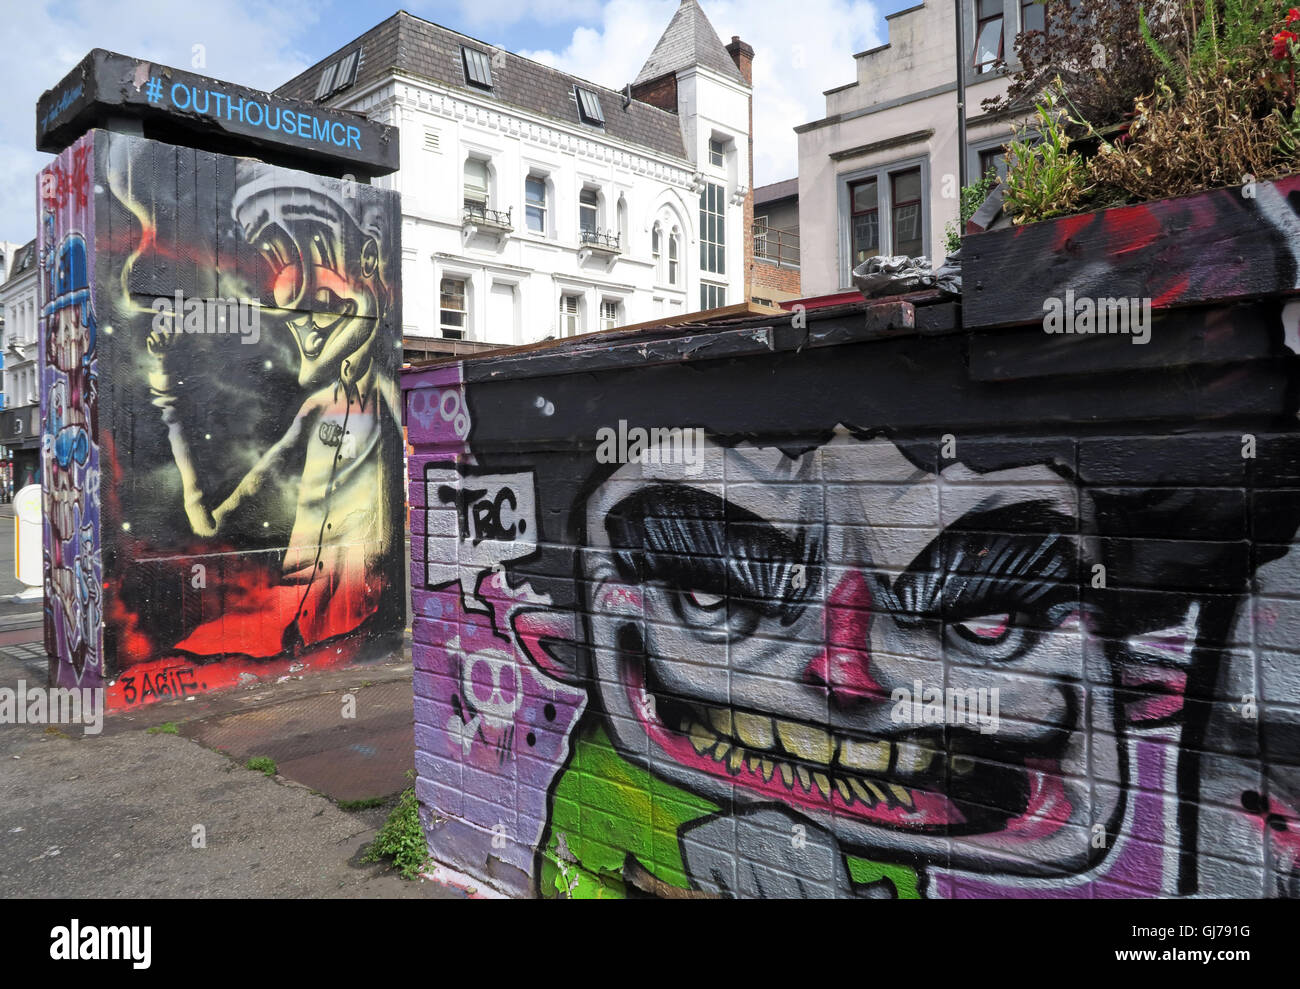 art,bowie,face,faces,David,paint,arts,media,paint,painting,Manchester,city,centre,Wall,Graffiti,August2016,August,2016,OUTHOUSEMCR,culture,historic,history,industry,industrial,tourist,tourism,travel,#outhousemcr,smile,face,David Bowie,Wall Graffiti,Northern Quarter,Stevenson,Square,GoTonySmith,@HotpixUK,HotpixUK,United,Kingdom,GB,English,British,laugh,city,centre,Buy Pictures of,Buy Images Of,Images of,Stock Images,United Kingdom,Great Britain